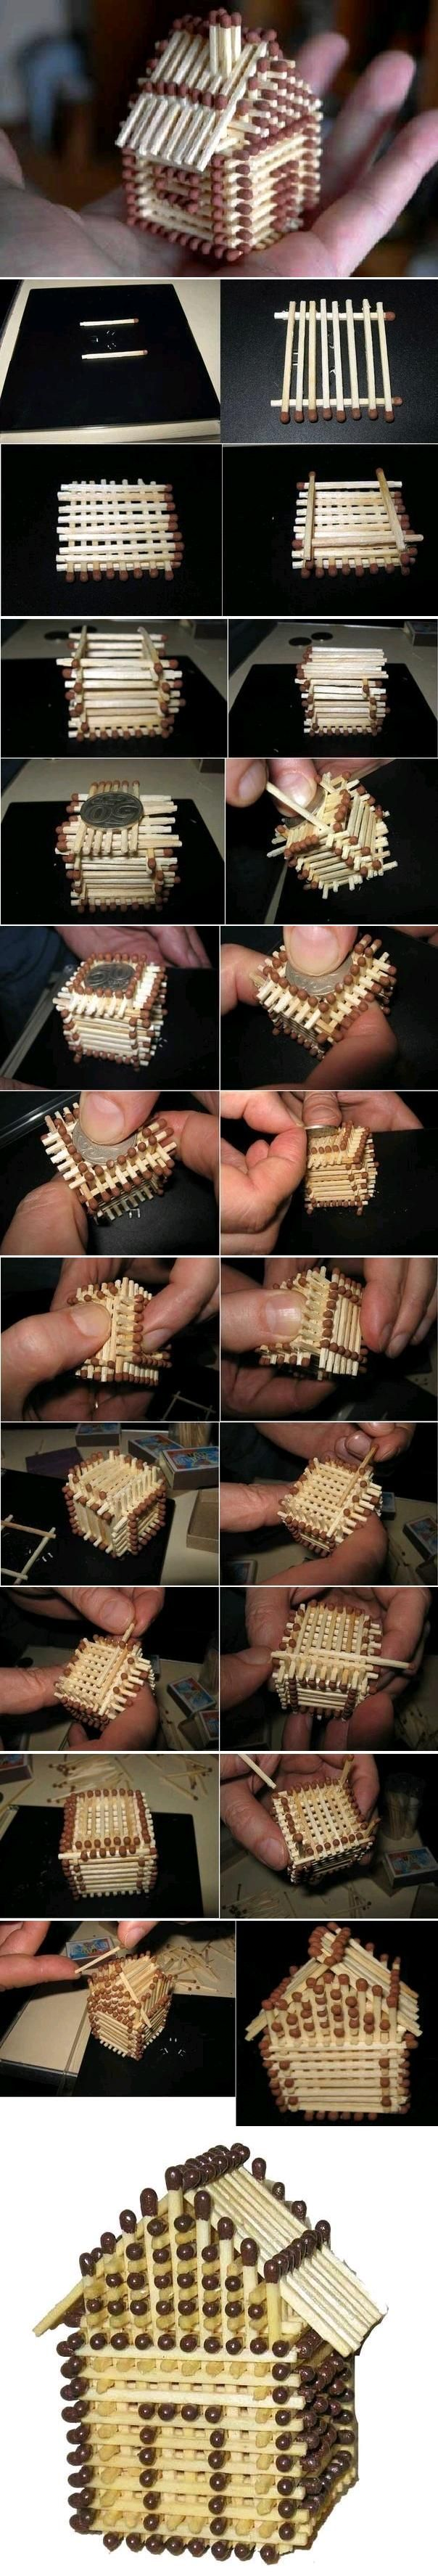 DIY Matches House DIY Projects